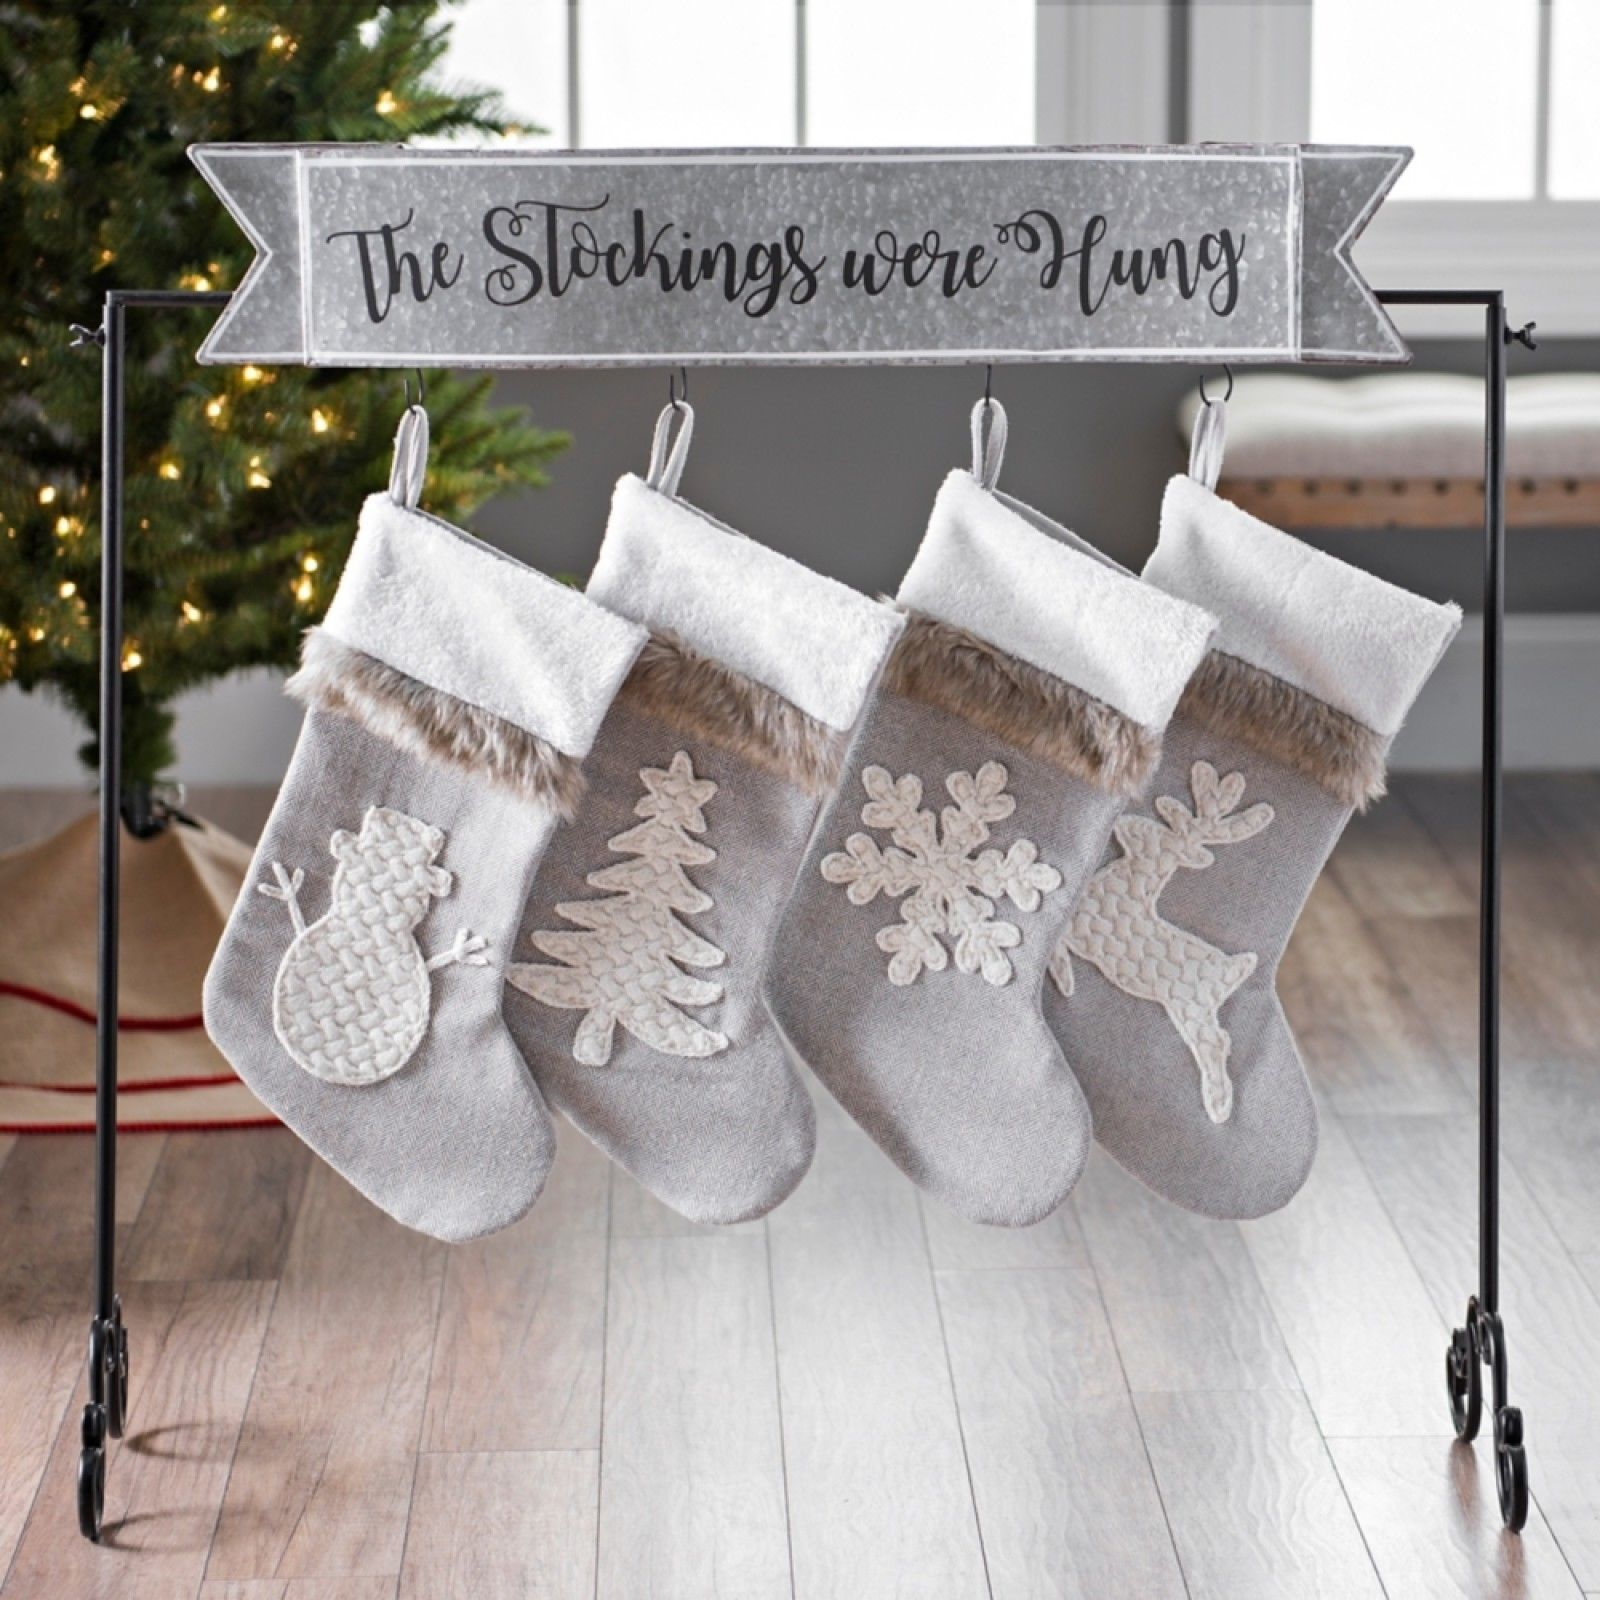 Description Place the stockings next to your tree with the ...